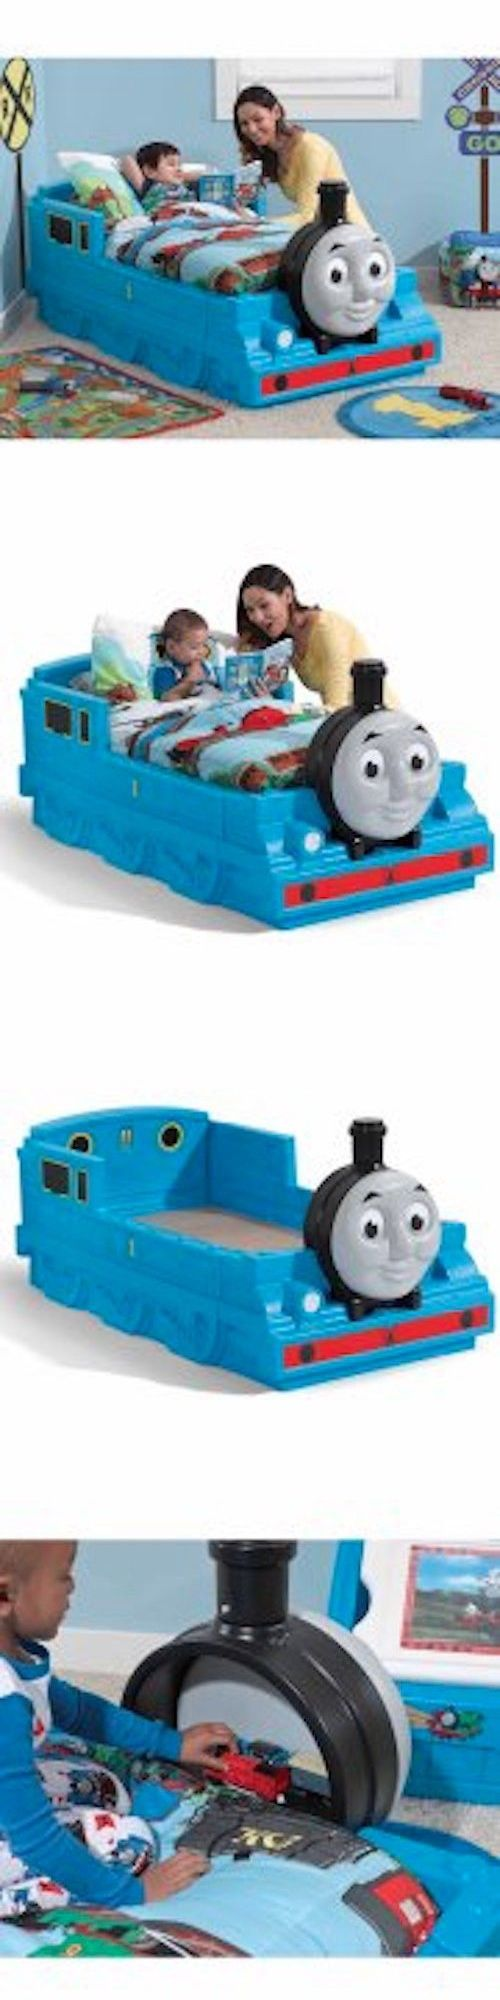 Home Decor: Step 2 Thomas The Tank Engine Toddler Bed BUY IT NOW ONLY: $189.99